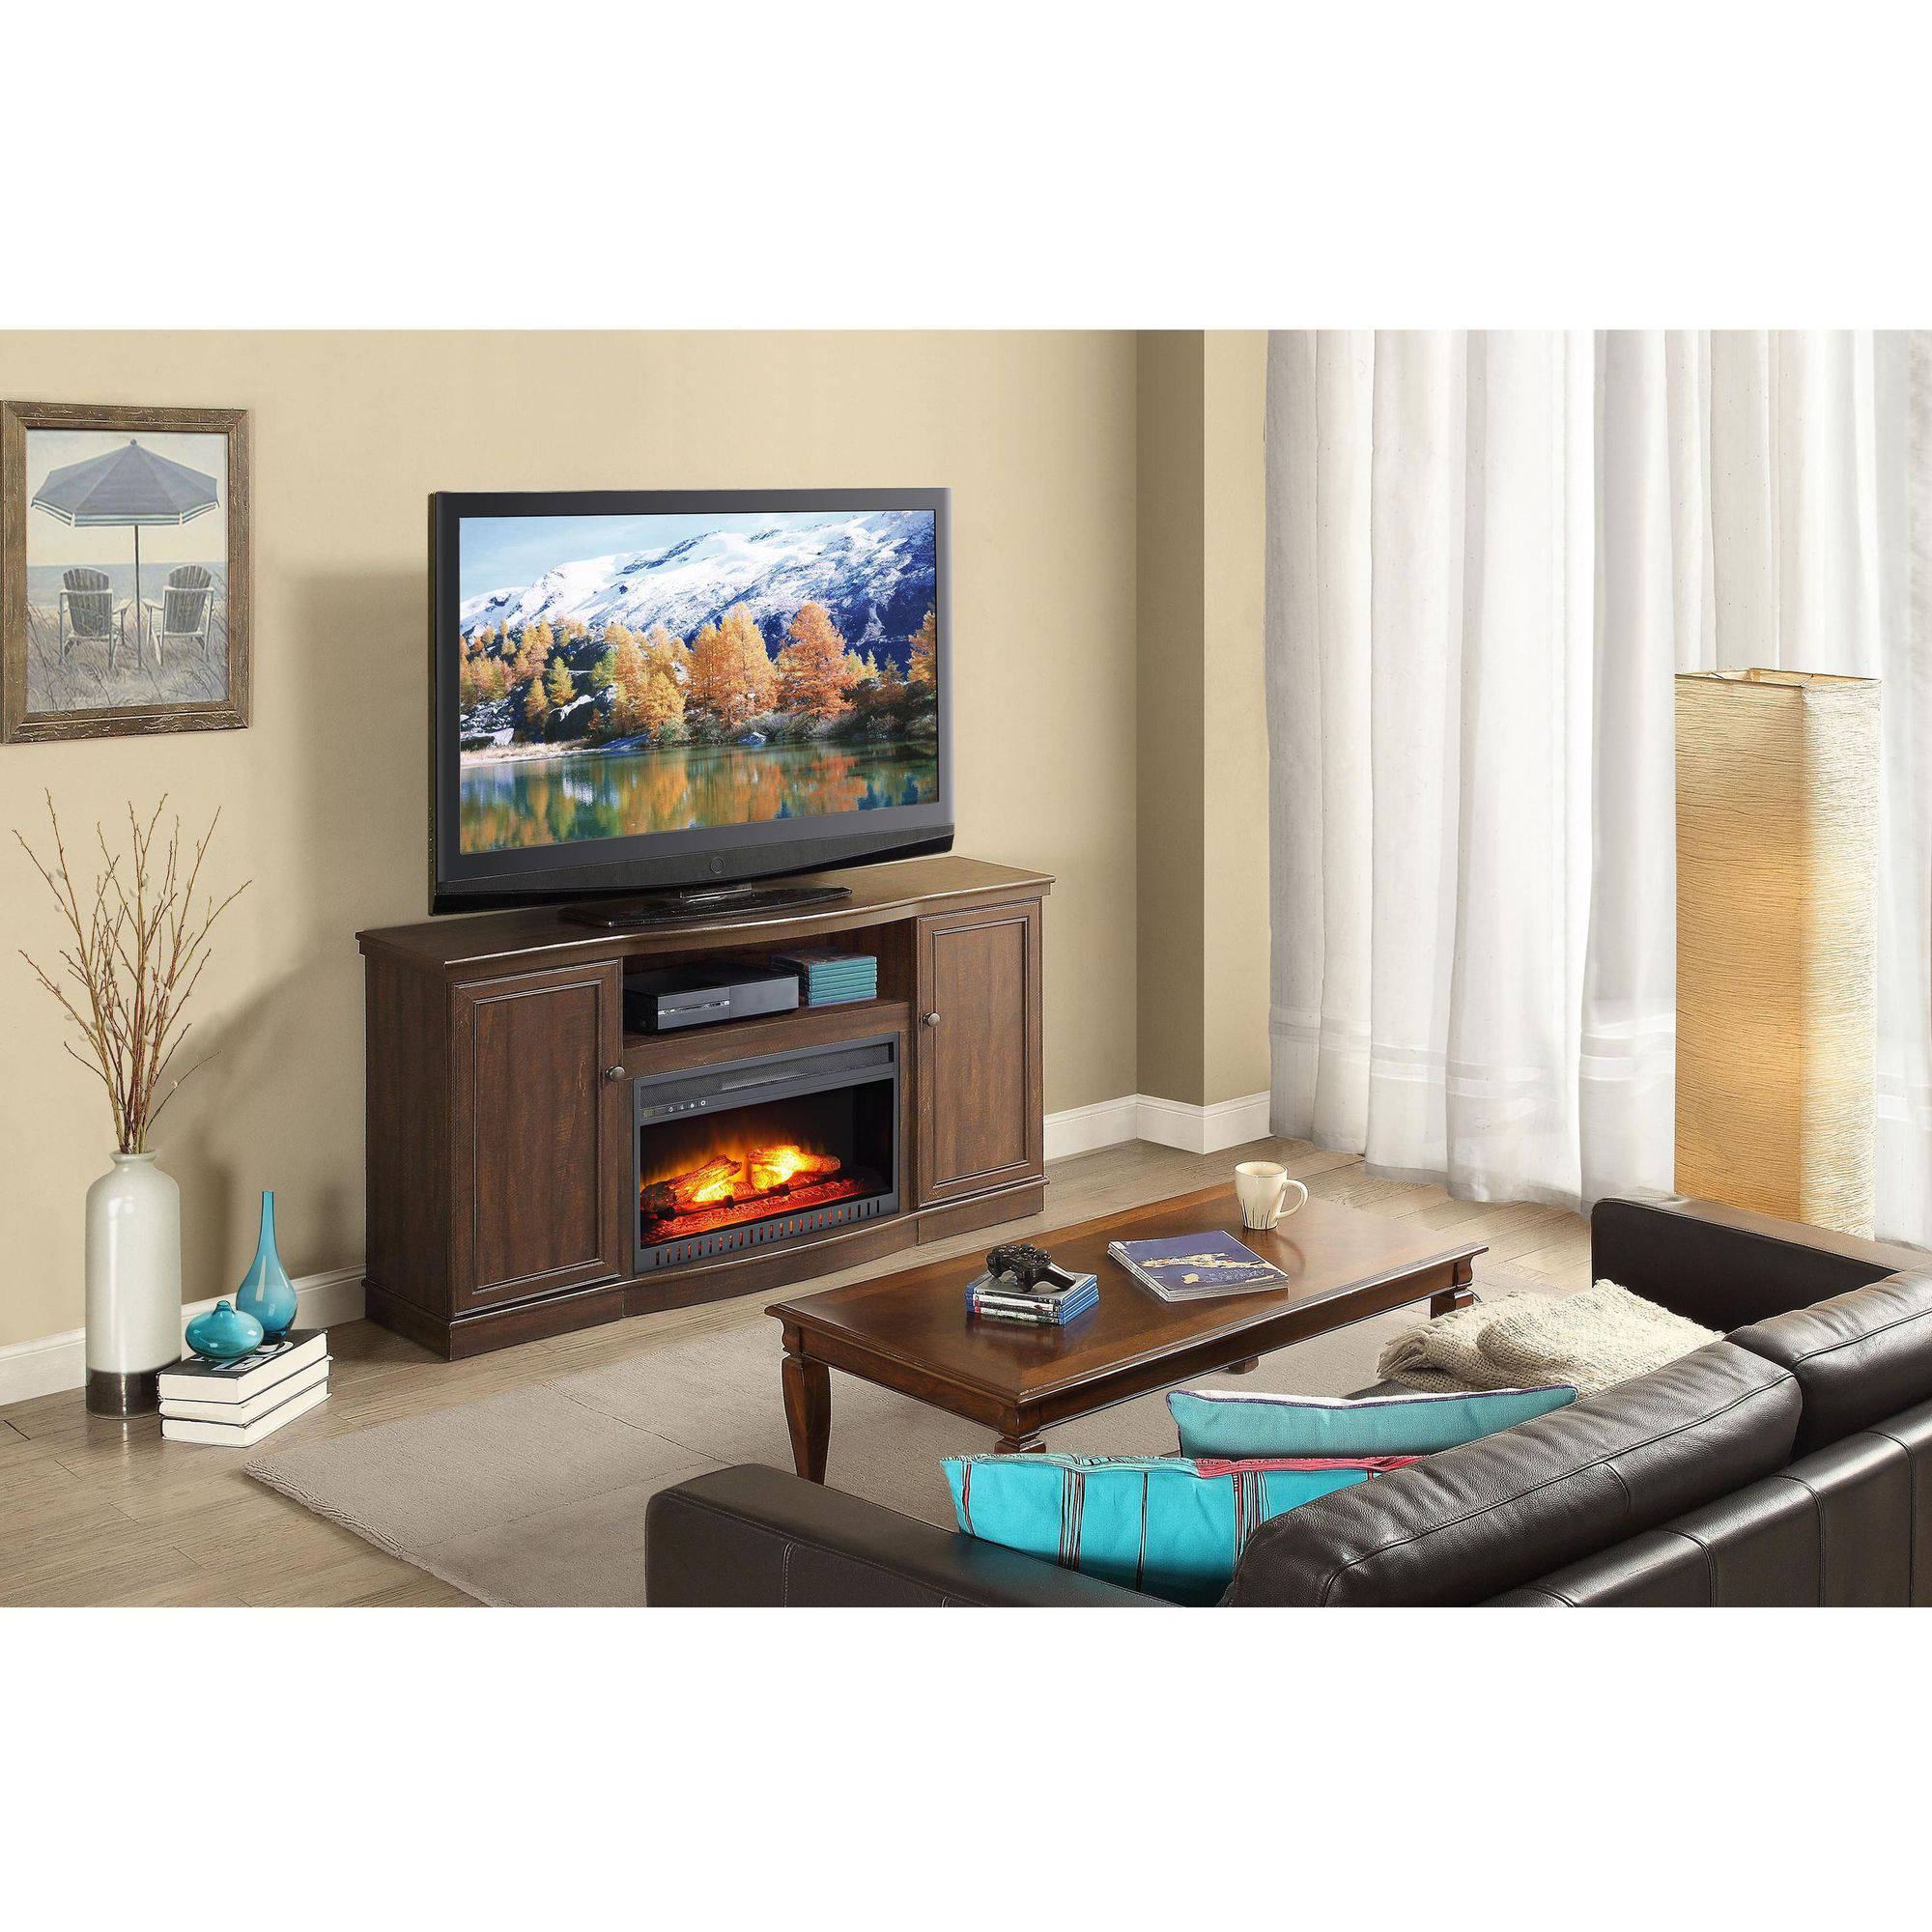 electric media fireplace furniture cabinet heater for tvs up to 65 inch brown ebay. Black Bedroom Furniture Sets. Home Design Ideas